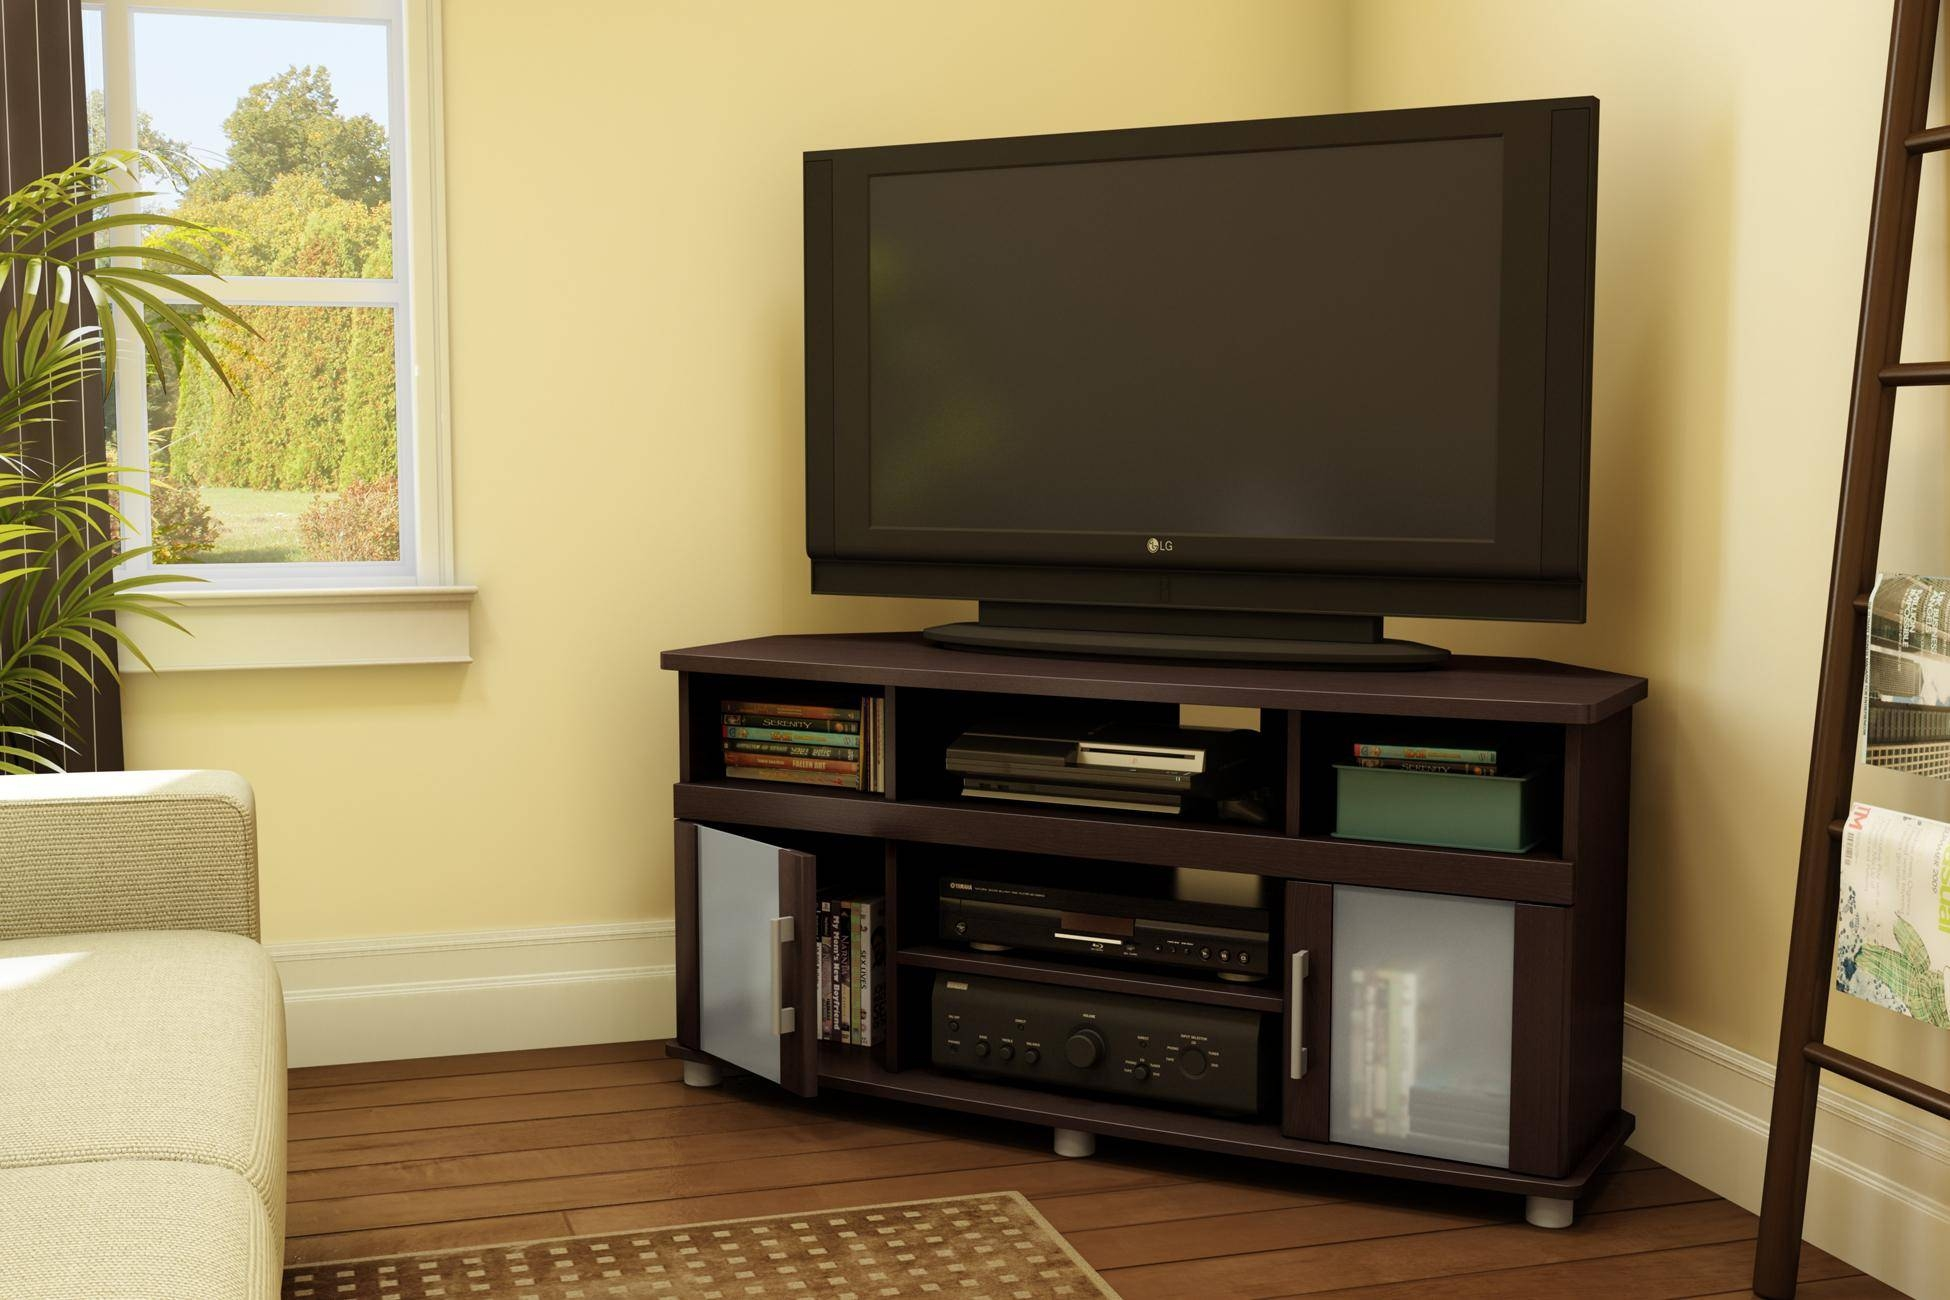 Storage Cabinets Ideas : Corner Tv Cabinet Black Choosing The with regard to Black Corner Tv Cabinets With Glass Doors (Image 10 of 15)